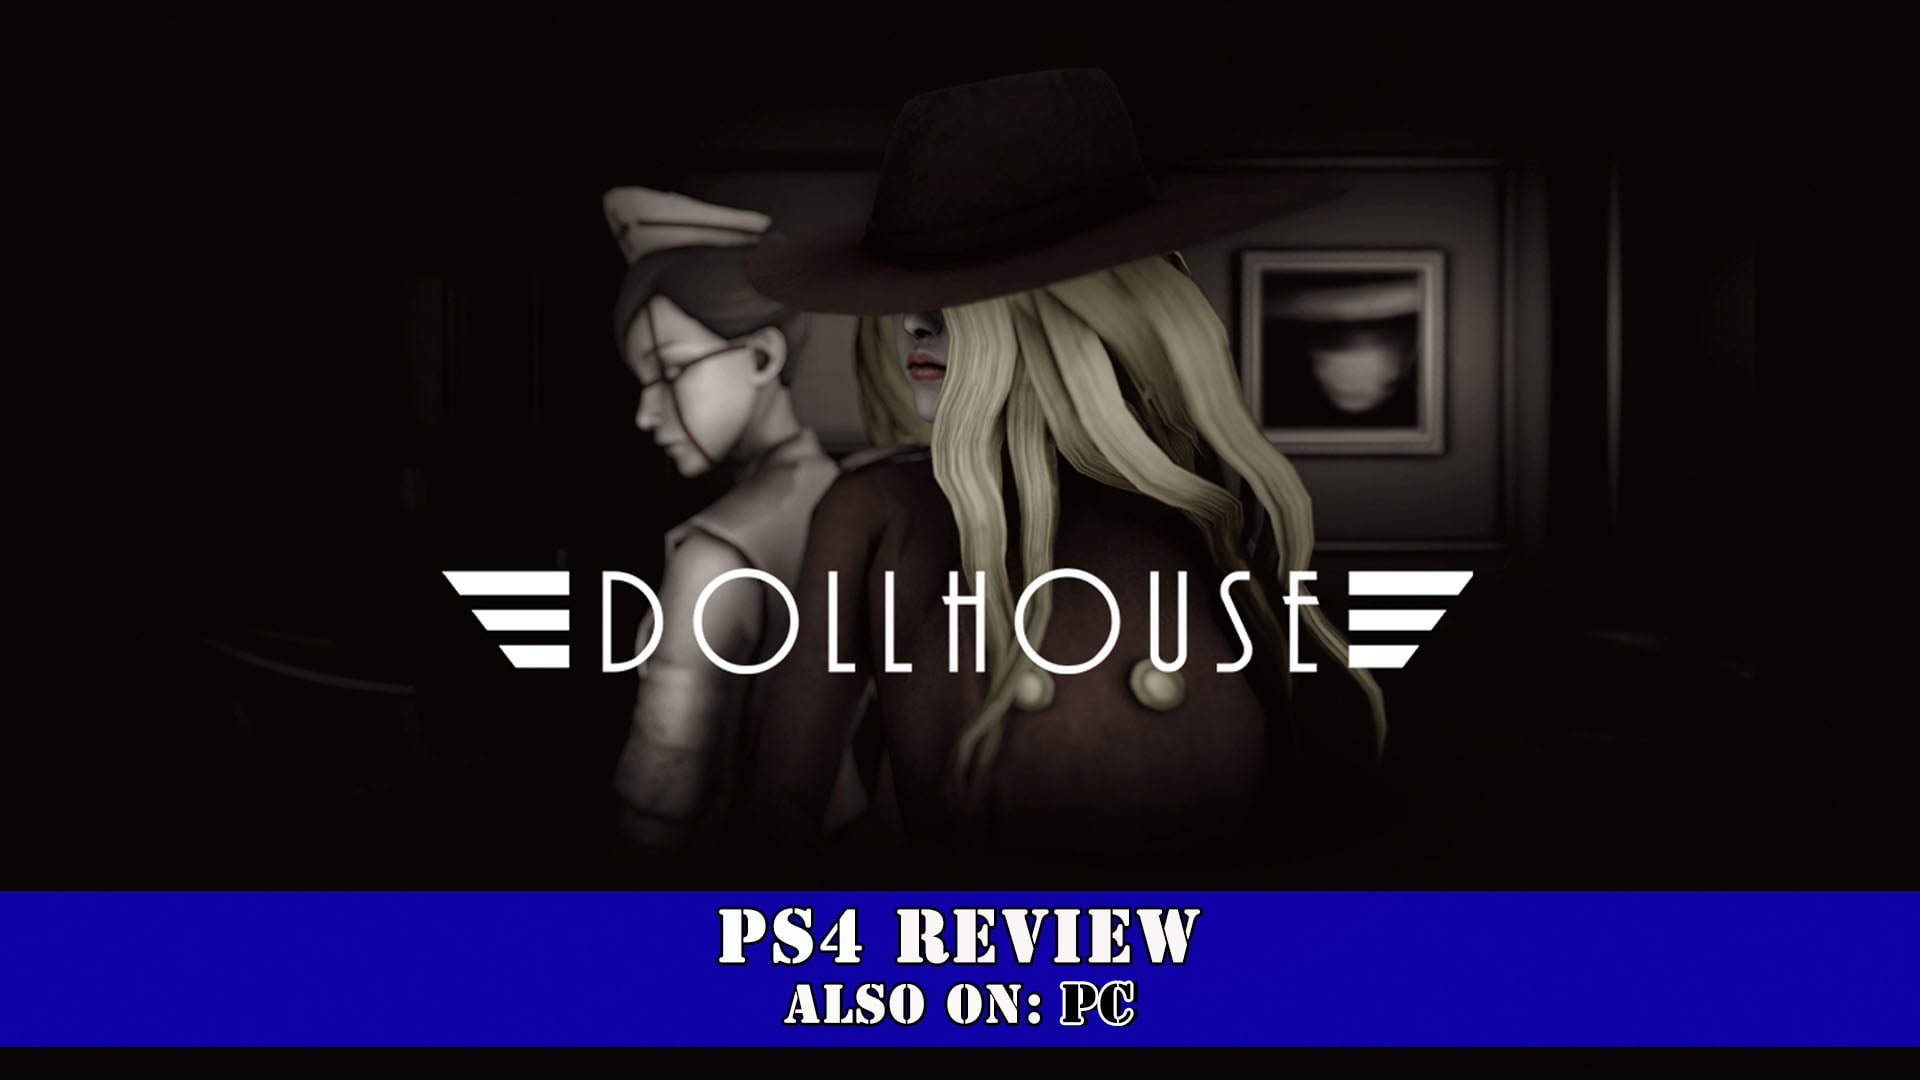 Dollhouse (PS4) Review